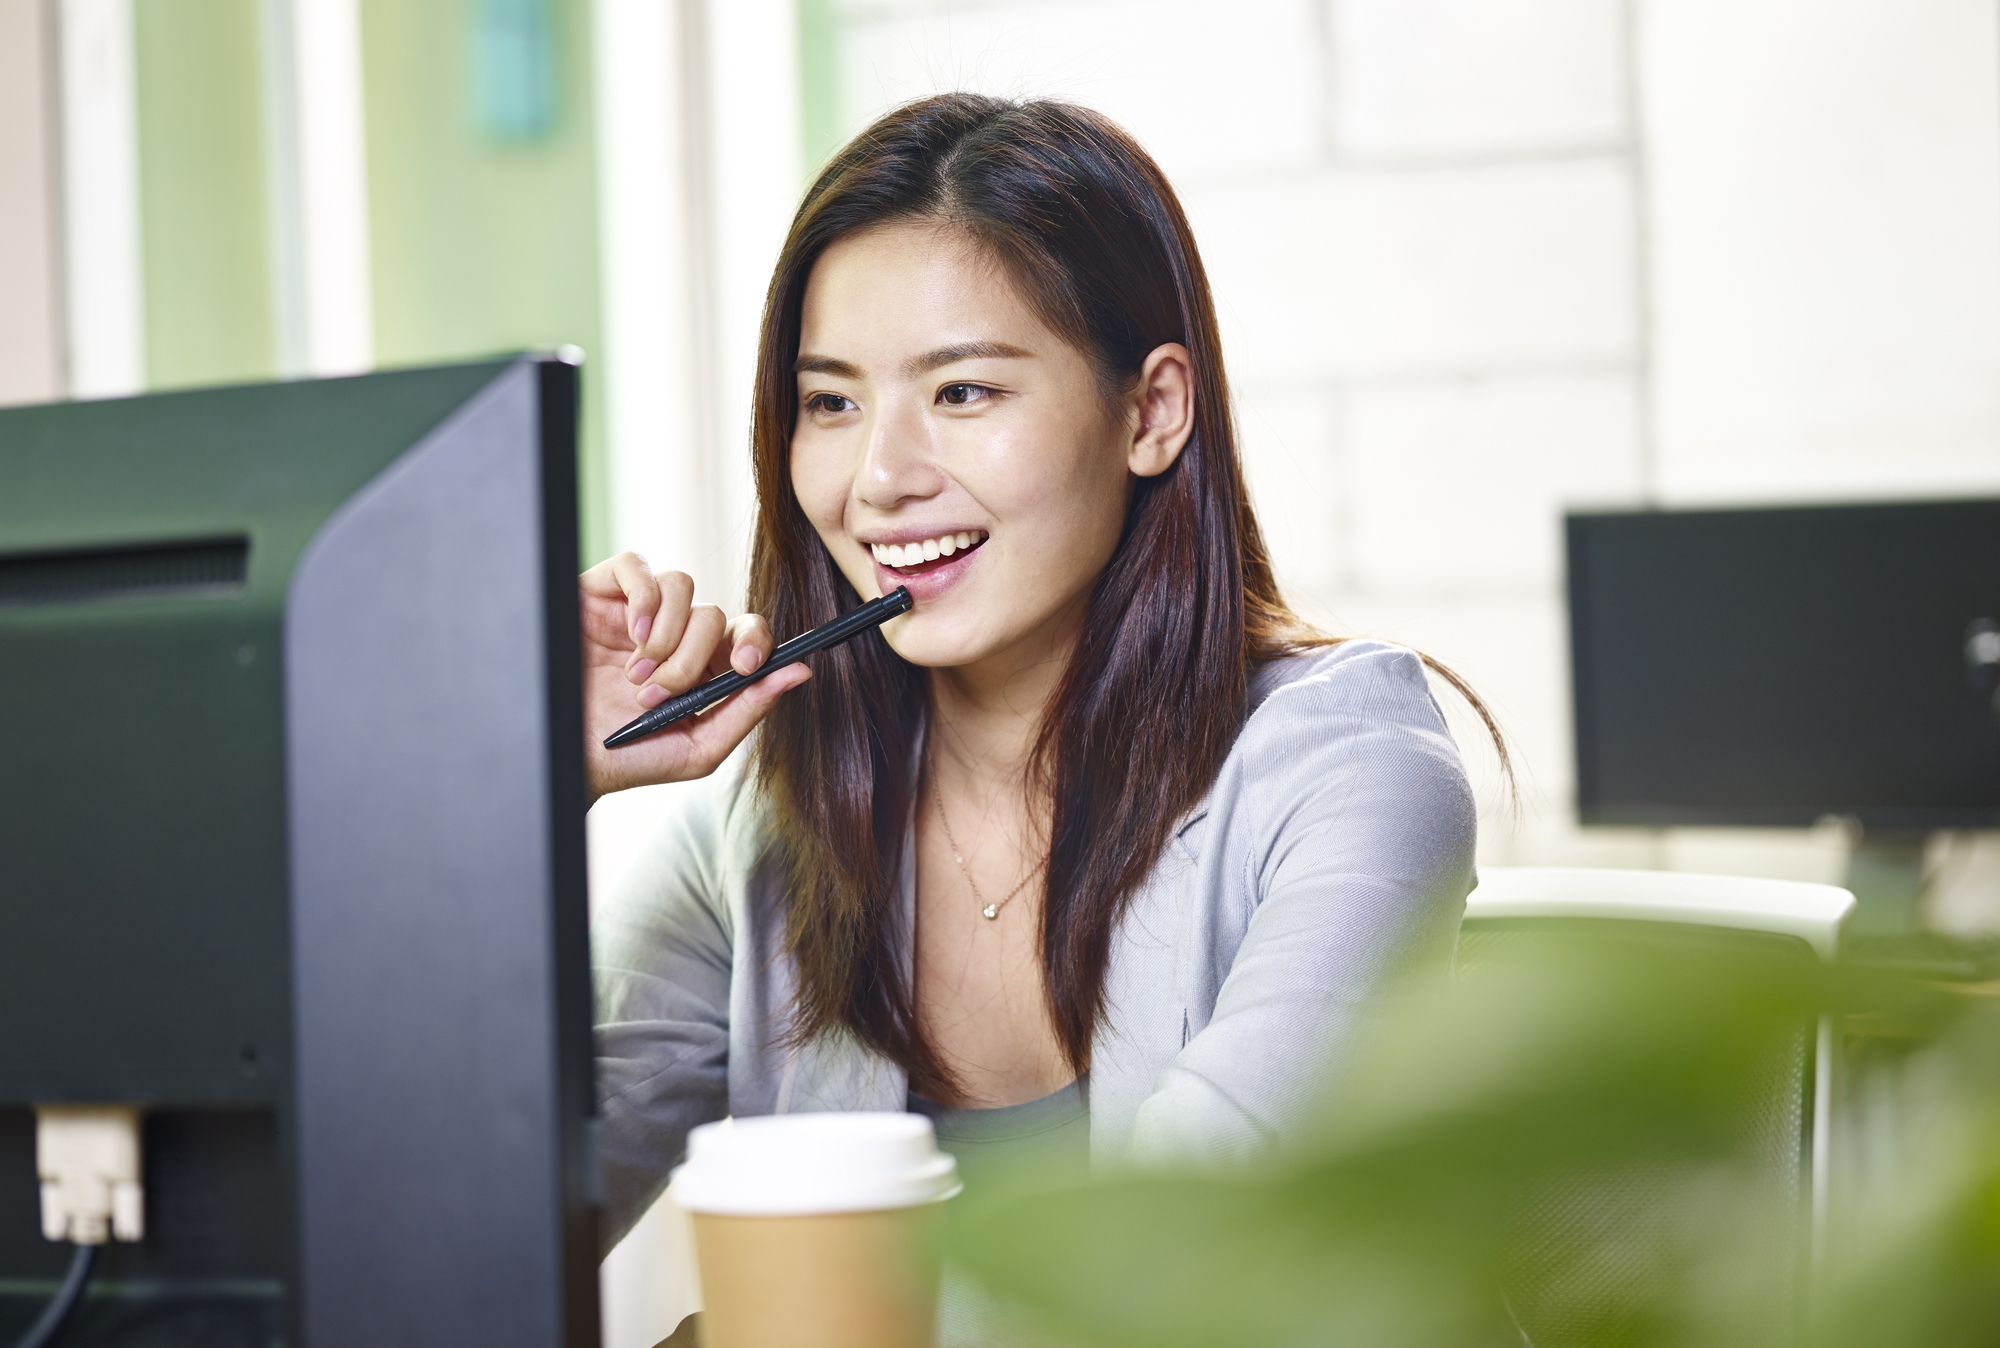 young-asian-business-woman-working-in-office-849386066_2003x1502.jpeg